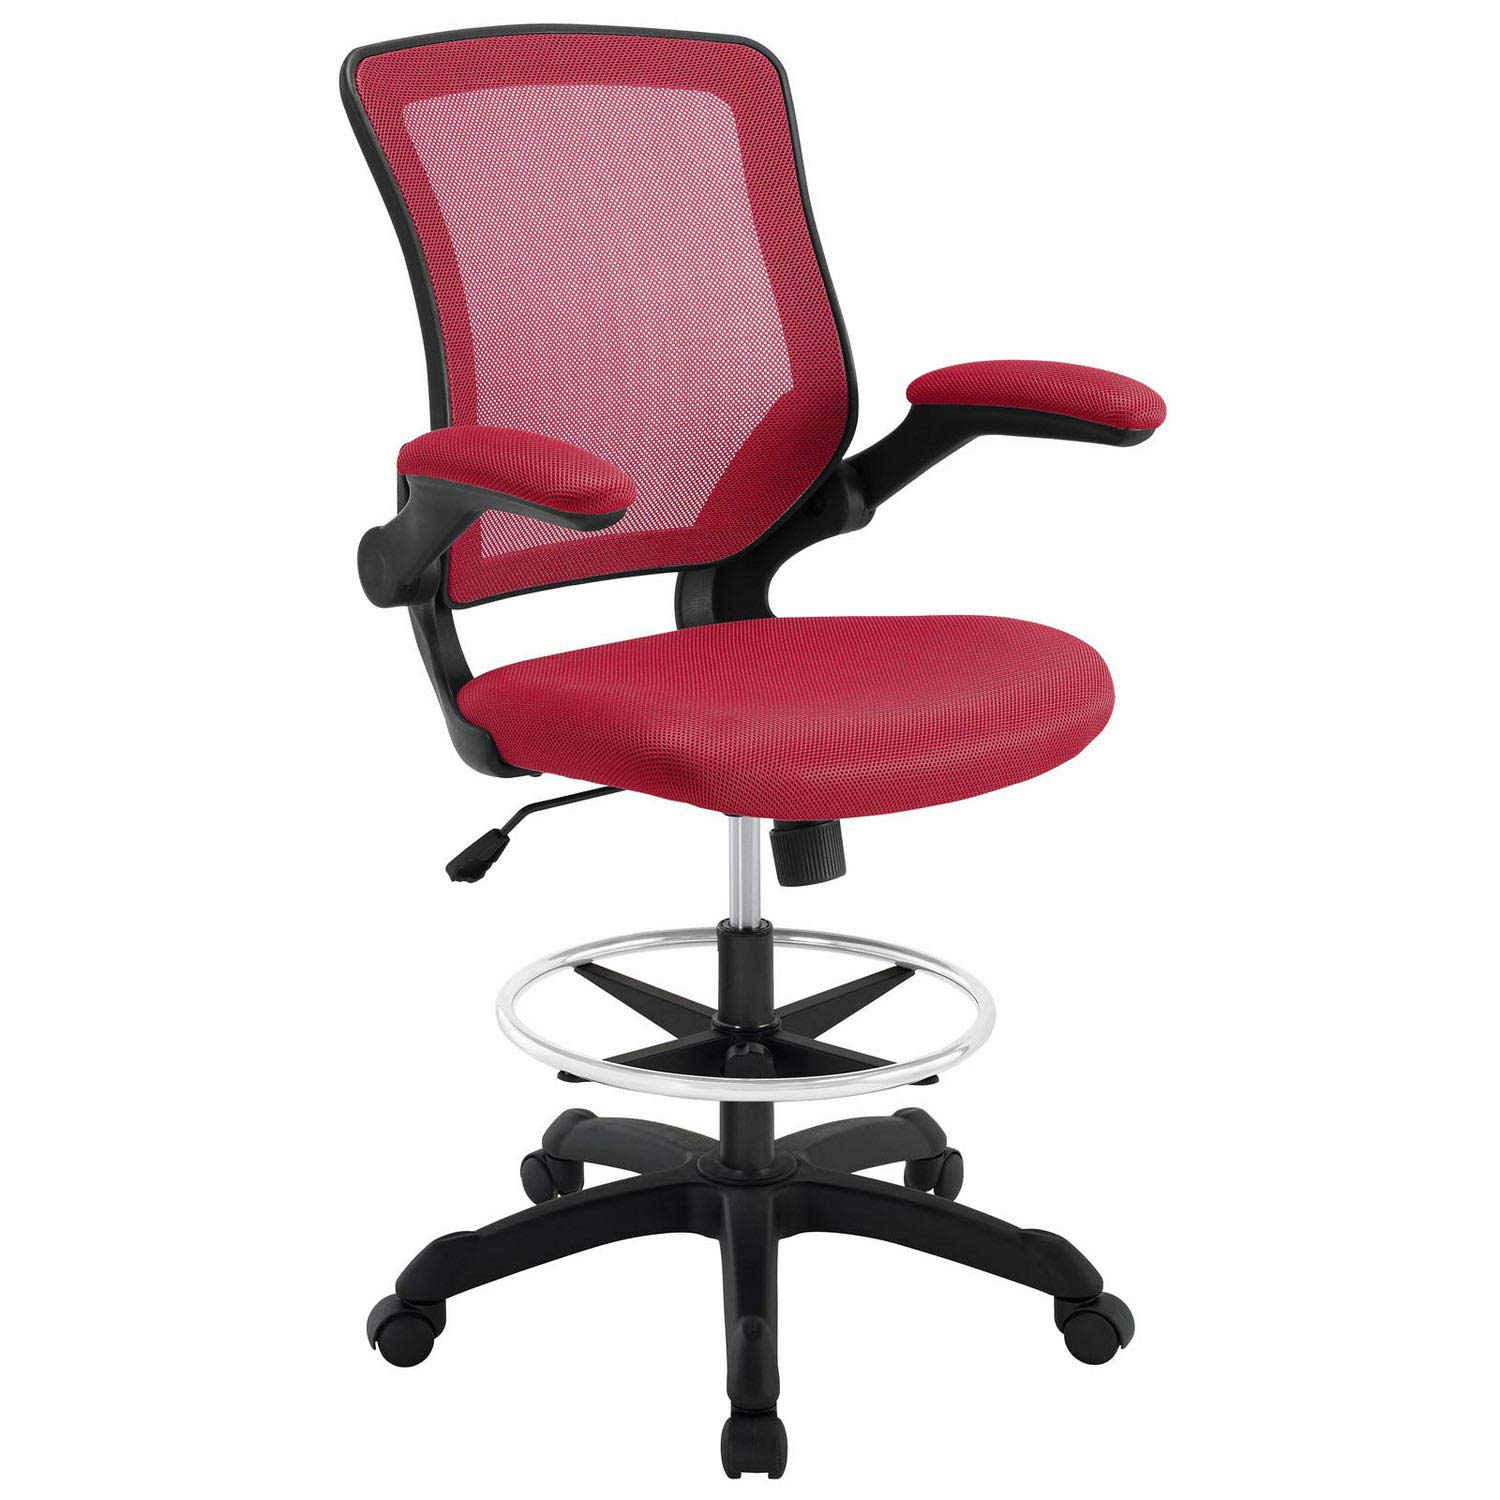 Modway Veer Drafting Stool - Red